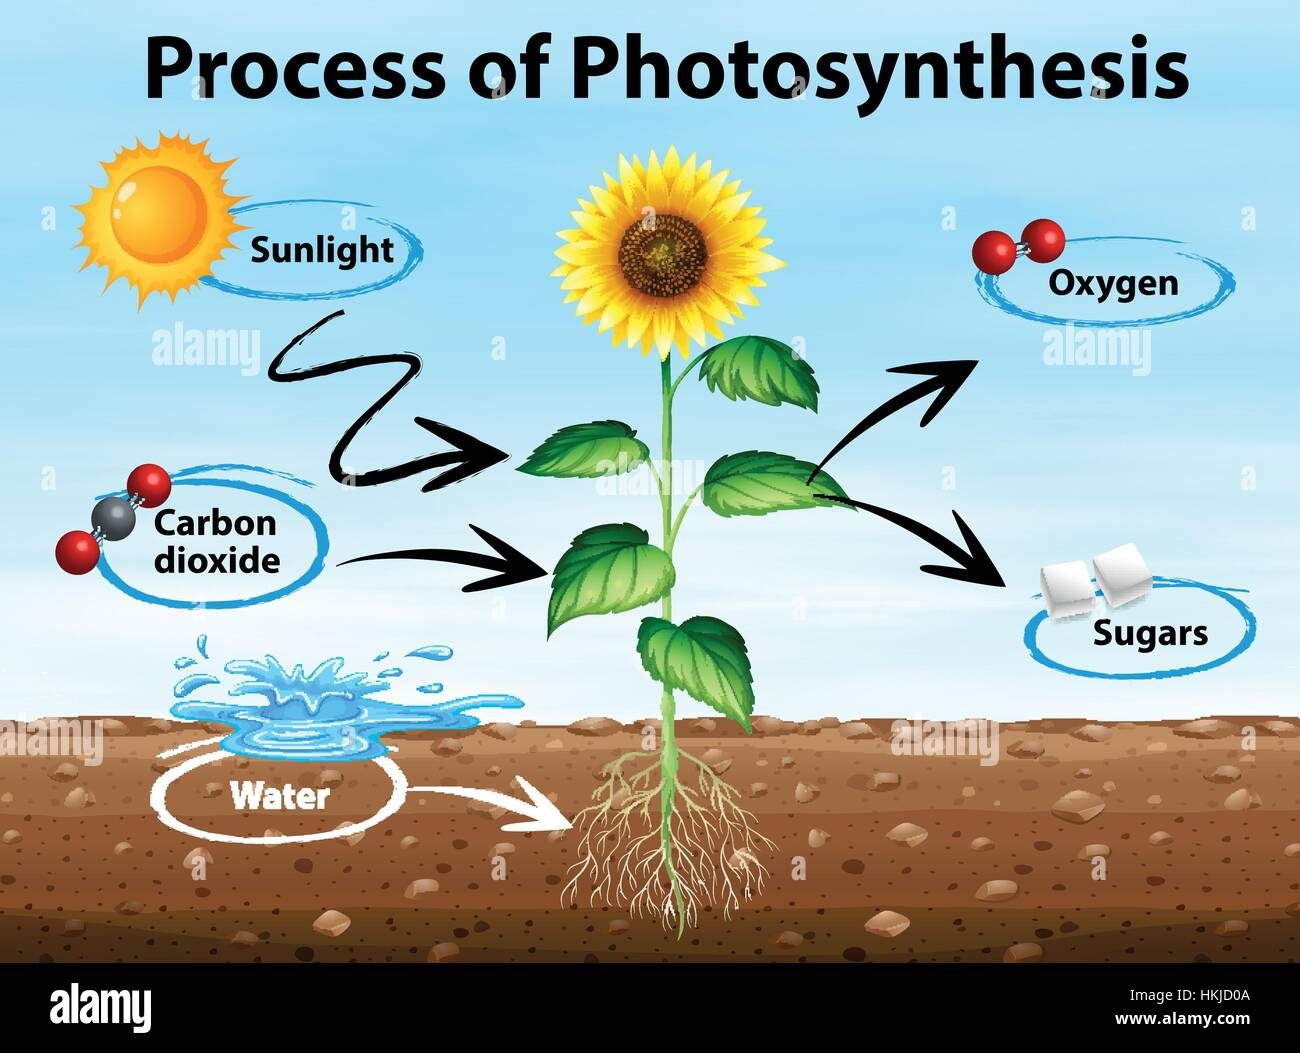 Diagram showing process of photosynthesis illustration stock vector diagram showing process of photosynthesis illustration ccuart Gallery